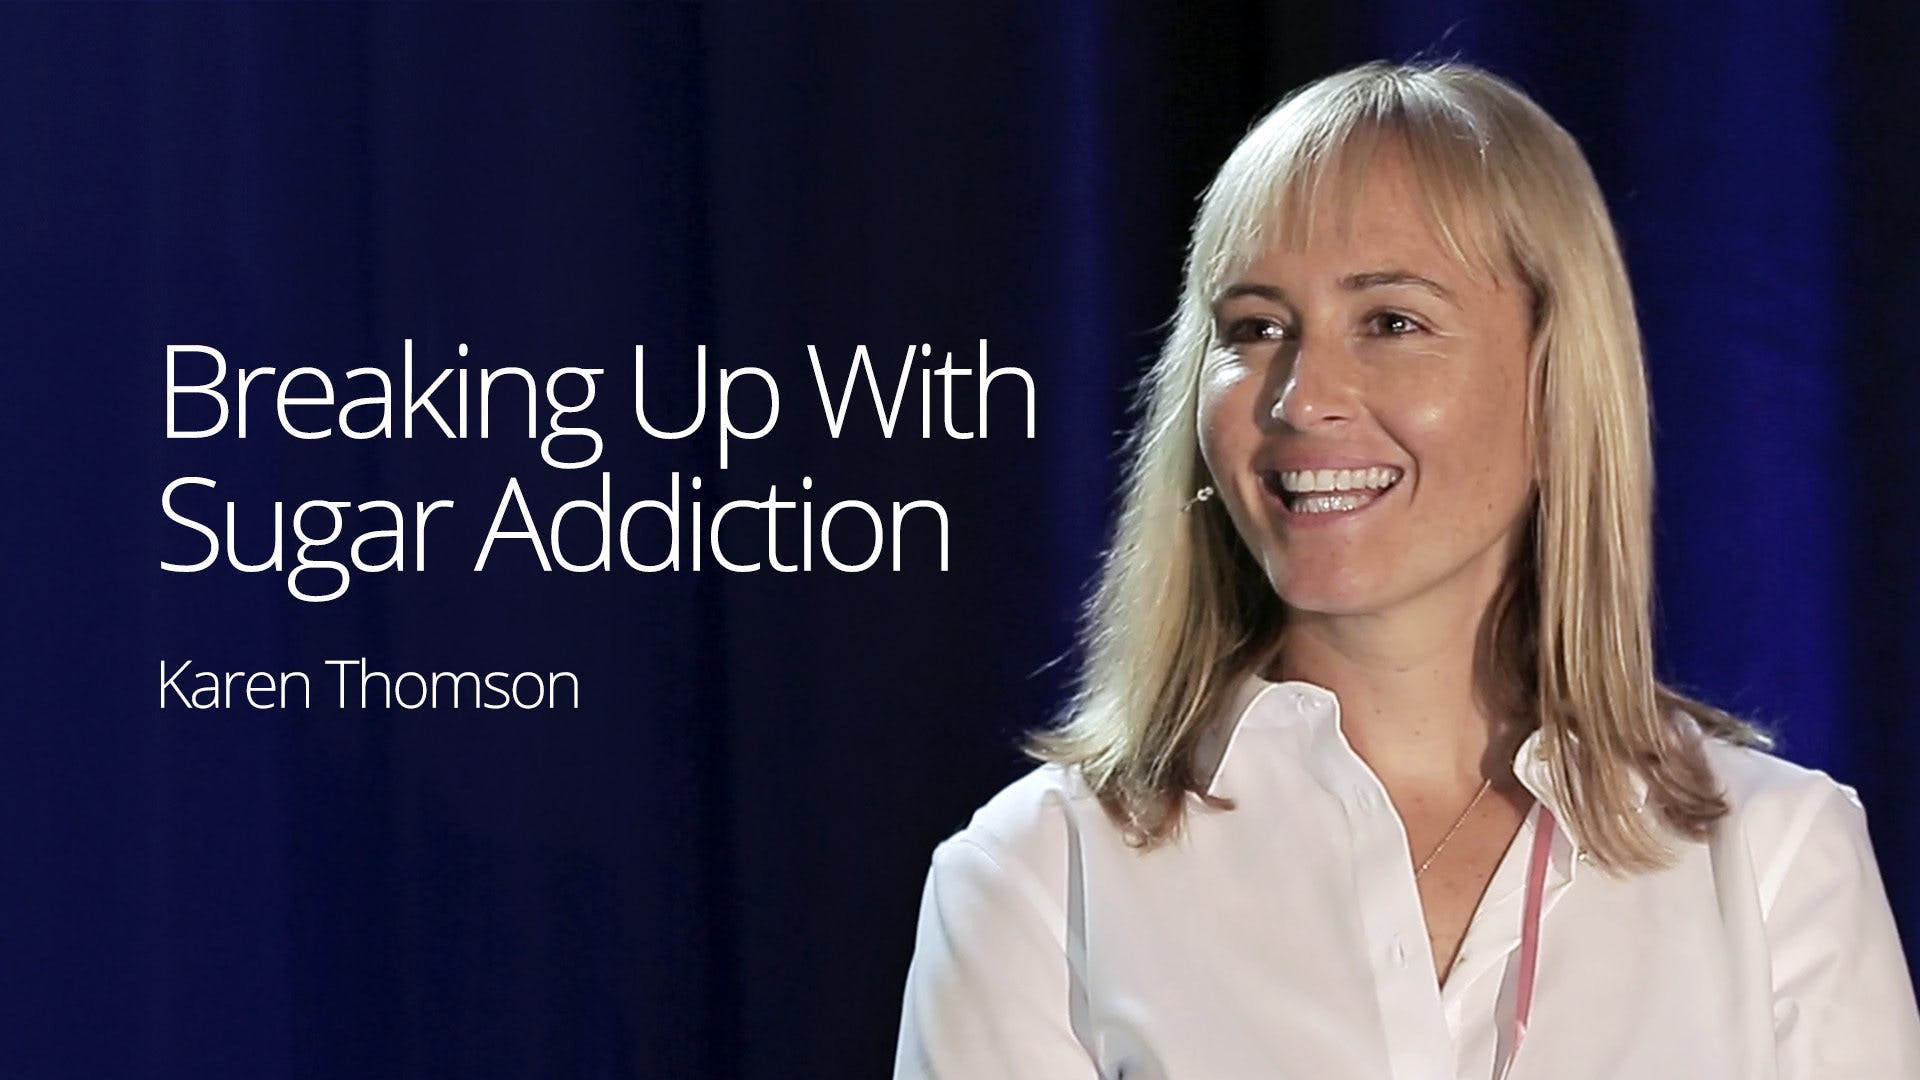 Breaking Up With Sugar Addiction – Karen Thomson